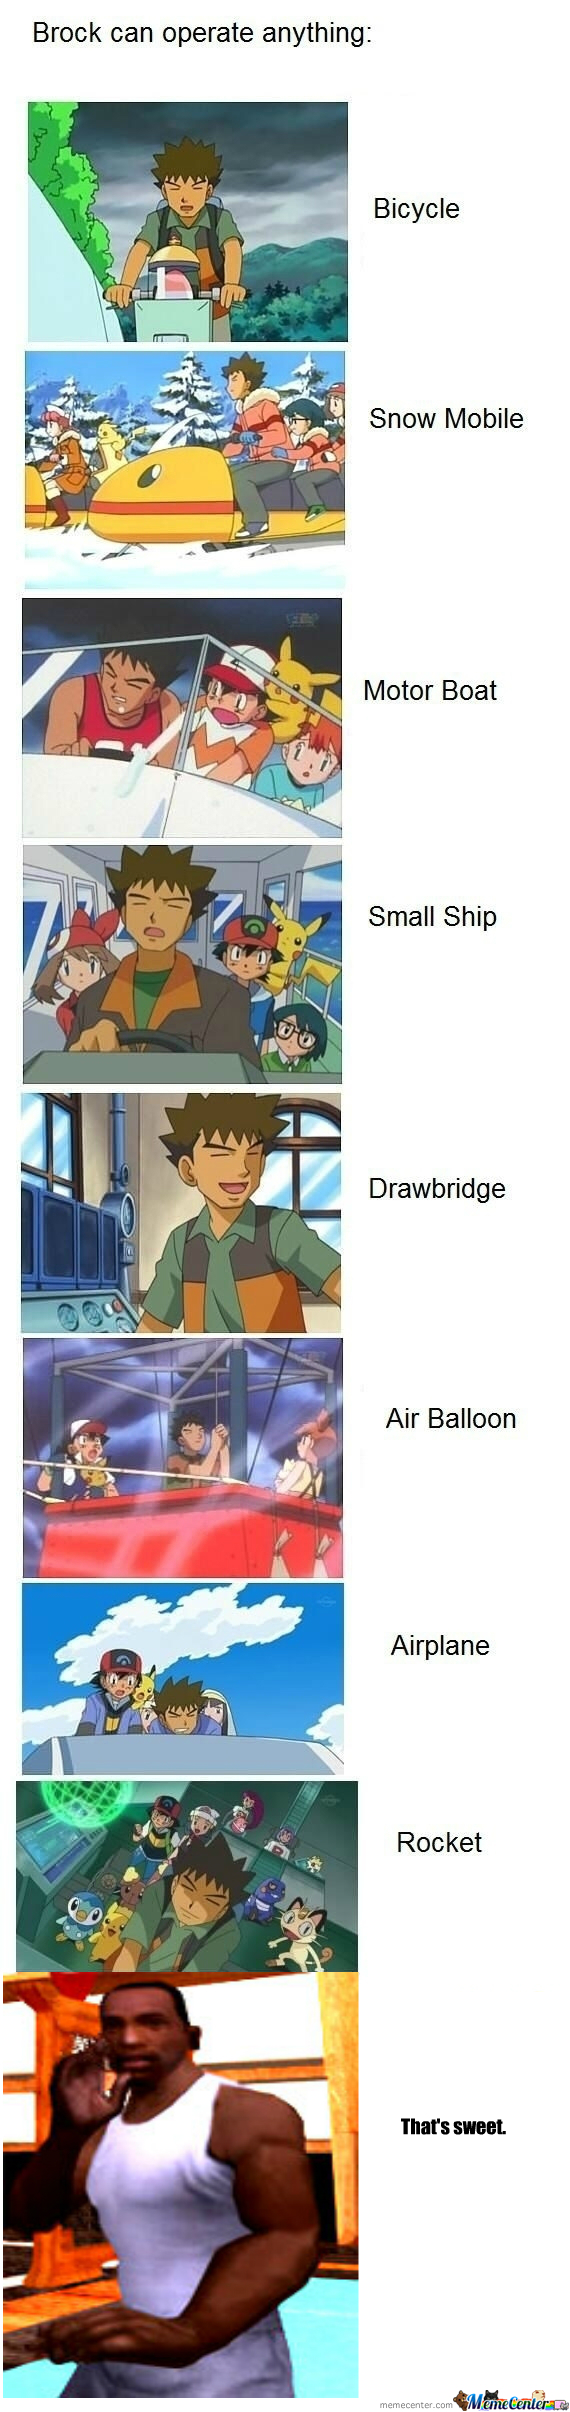 [RMX] Brock Can Operate Anything...except Women